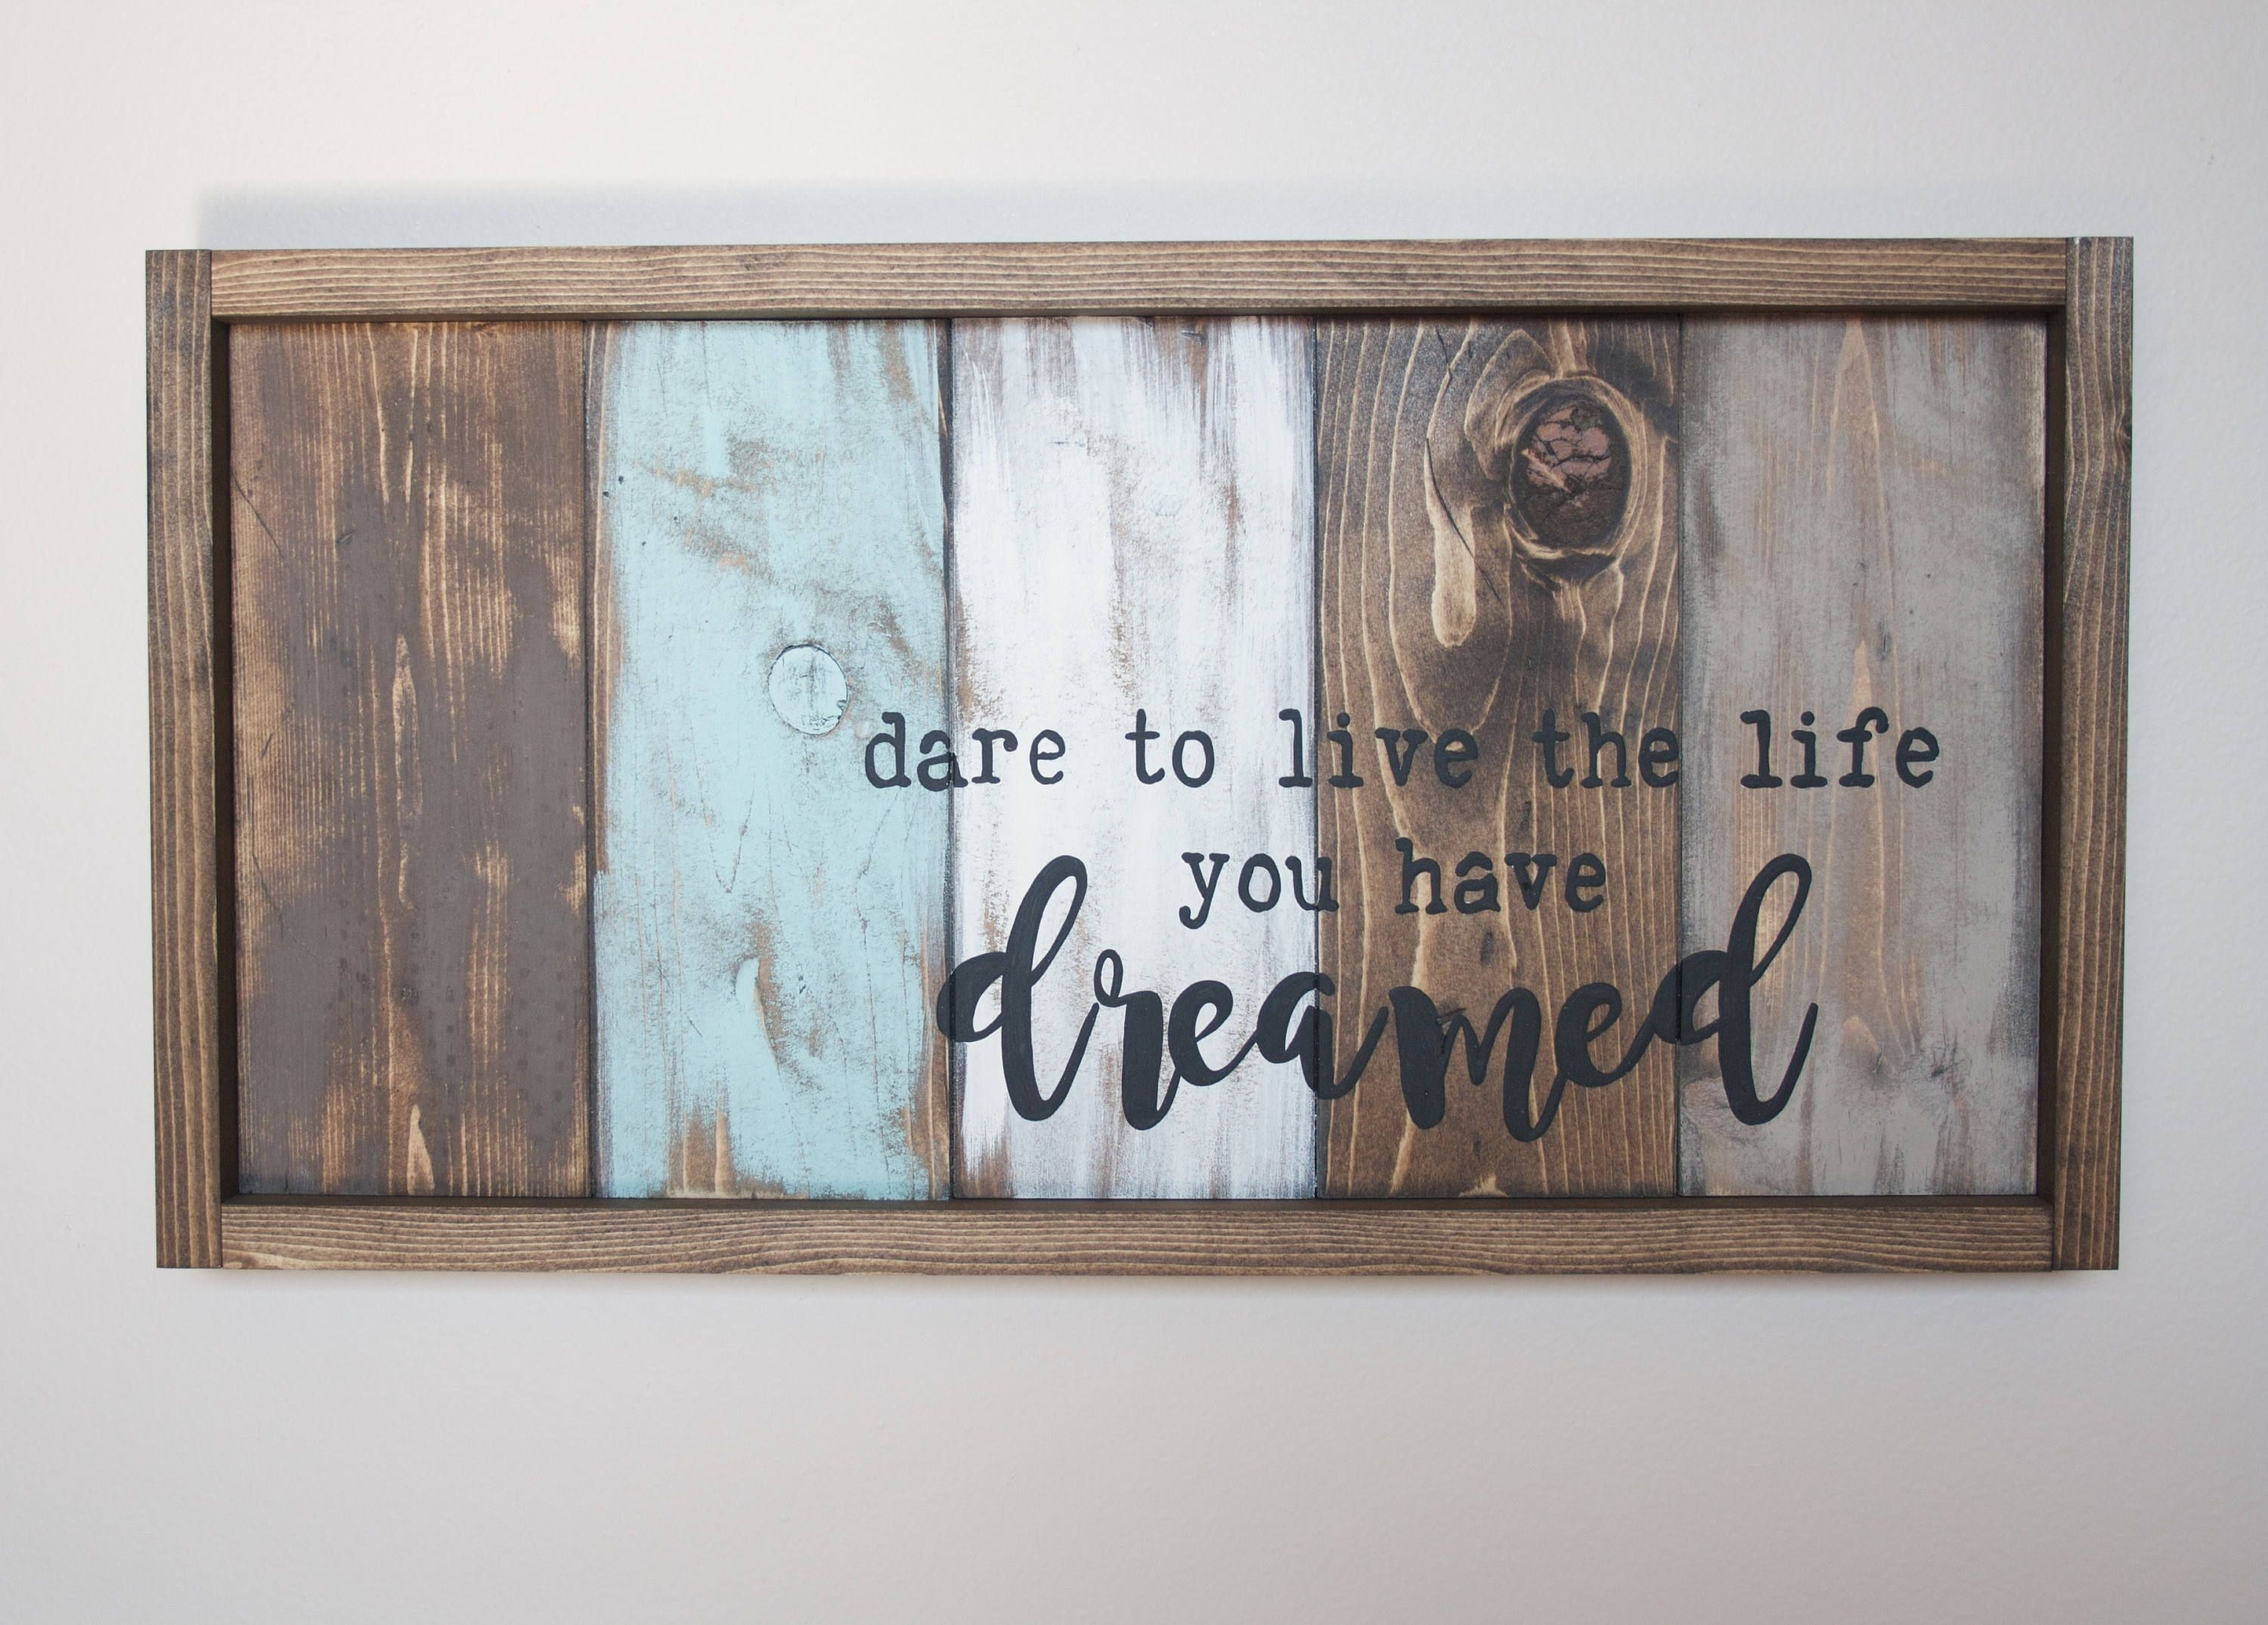 Motivational Wall Decor – Live The Life You Love – Pallet Wall Art With Regard To Most Current Pallet Wall Art (View 3 of 15)